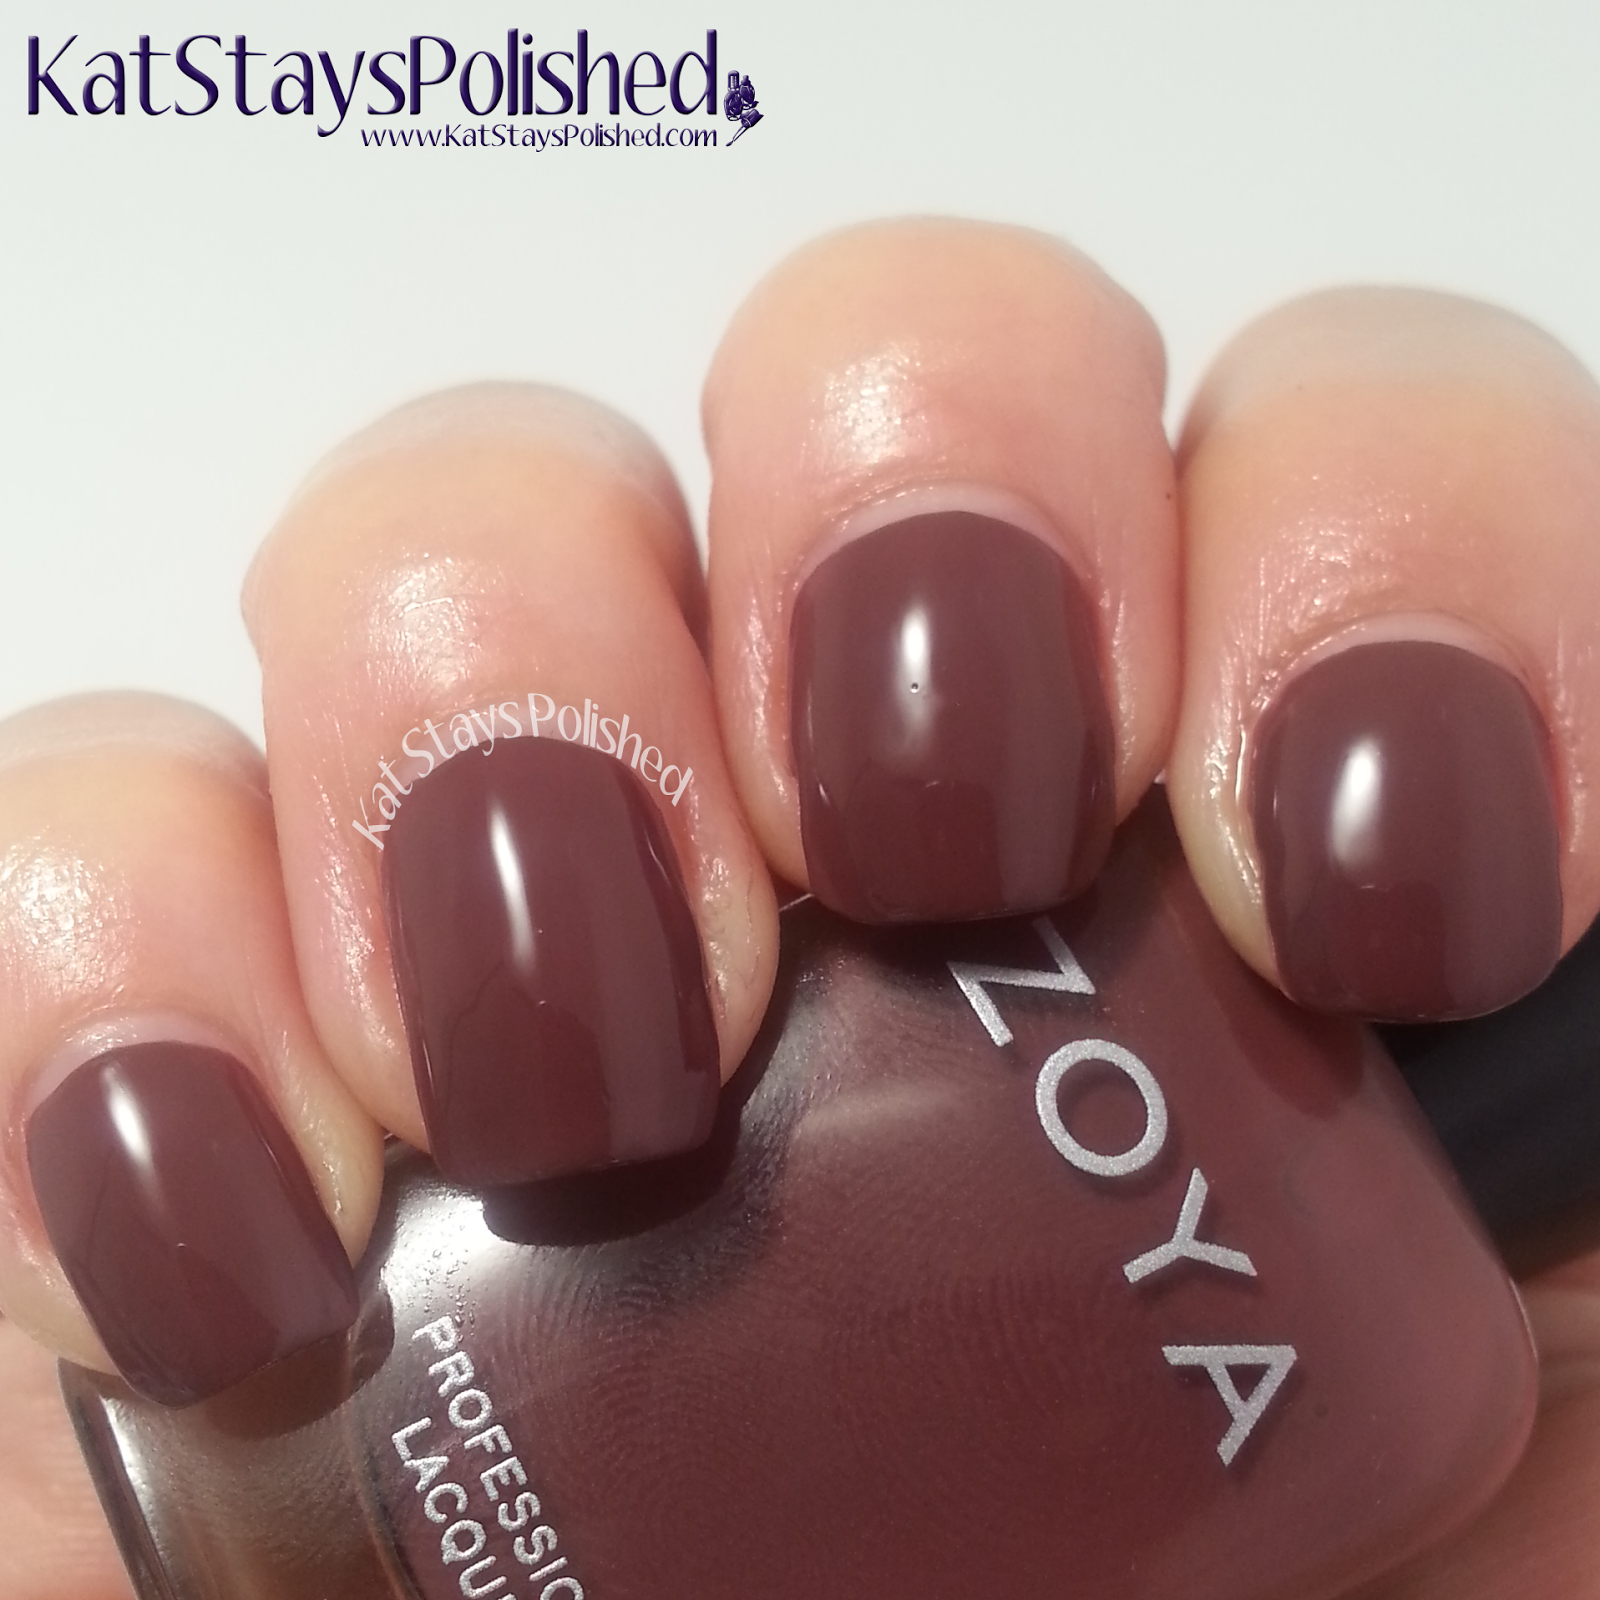 Zoya Naturel Deux - Marnie | Kat Stays Polished